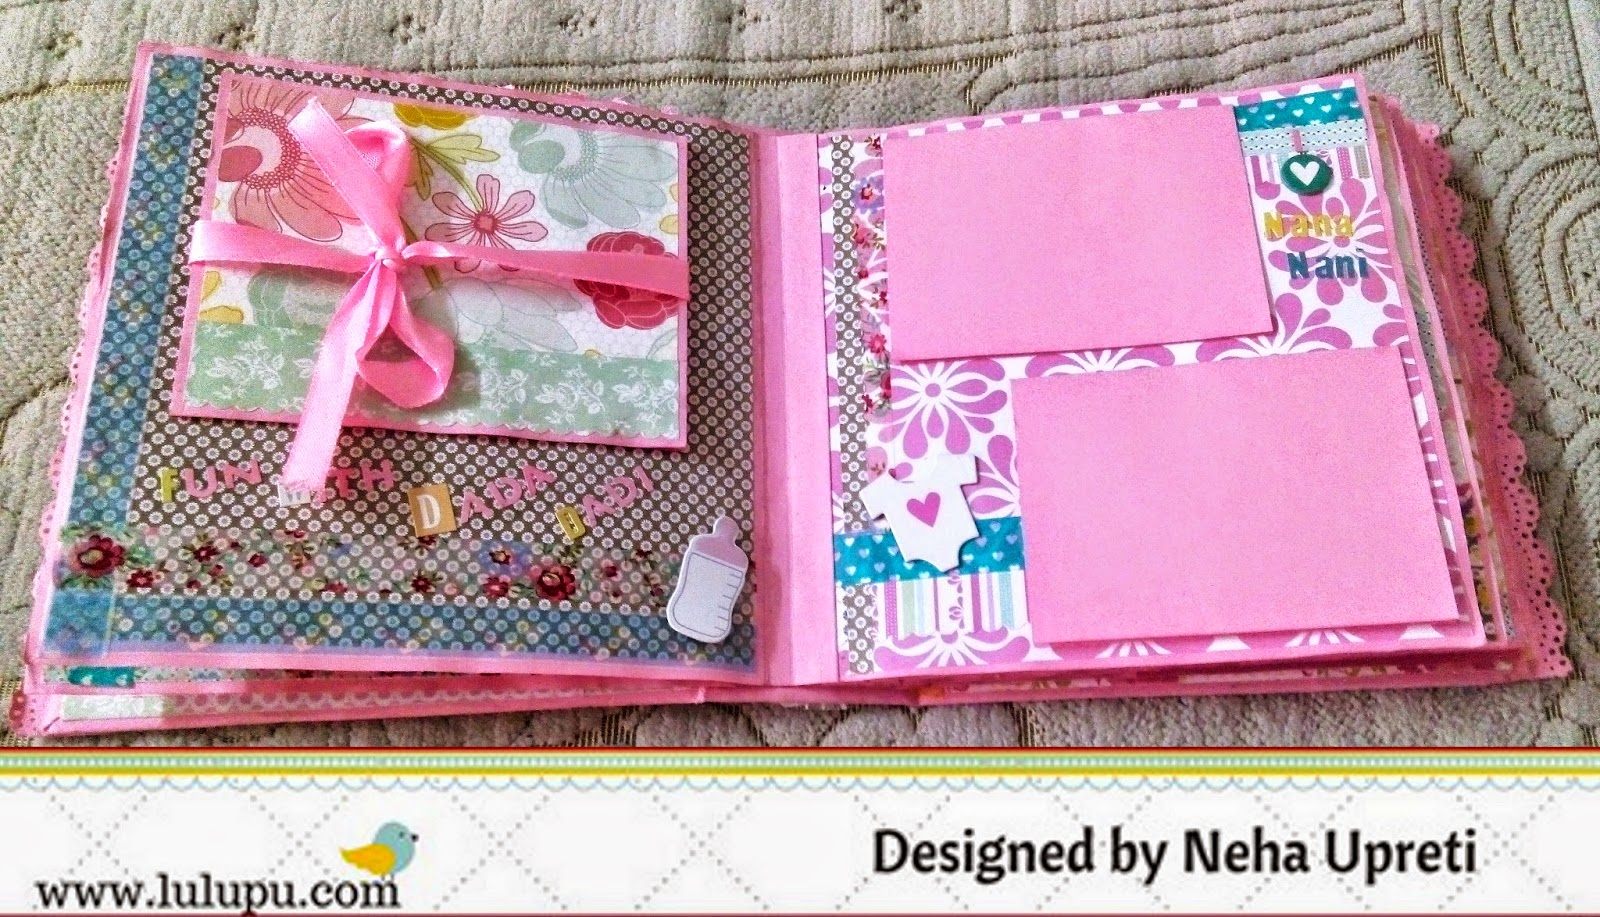 Baby girl scrapbook ideas - Here I Have Used The Baby Girl Me My Big Ideas Kit It Comes In A 12 12 Size And Is Perfect For Making A Baby Girl Scrapbook Album